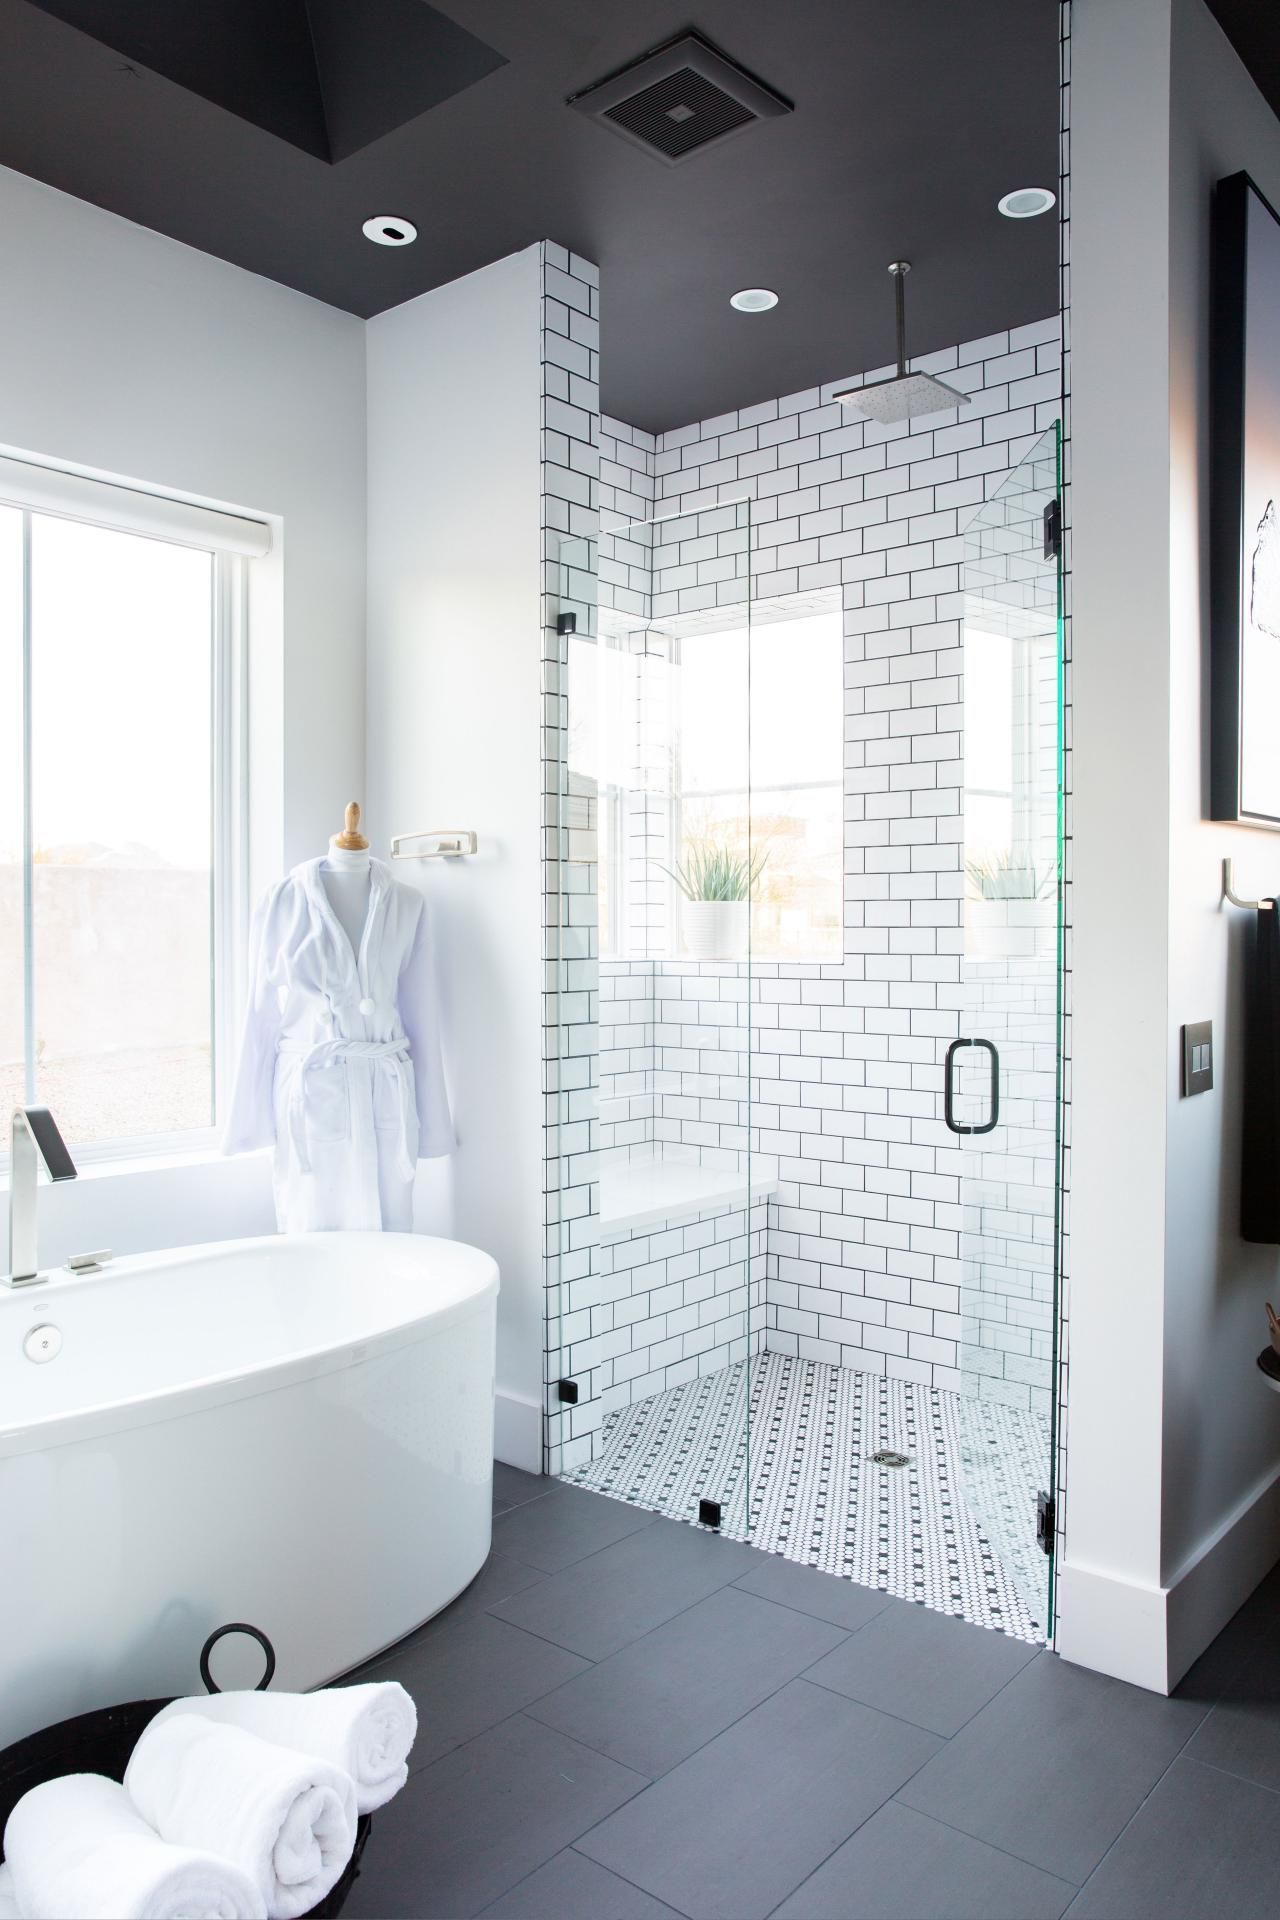 Browse Through Gorgeous Hgtv Smart Home 2017 Pictures Room By Room And Vote For The Space You Bathroom Remodel Shower Bathrooms Remodel Small Bathroom Remodel